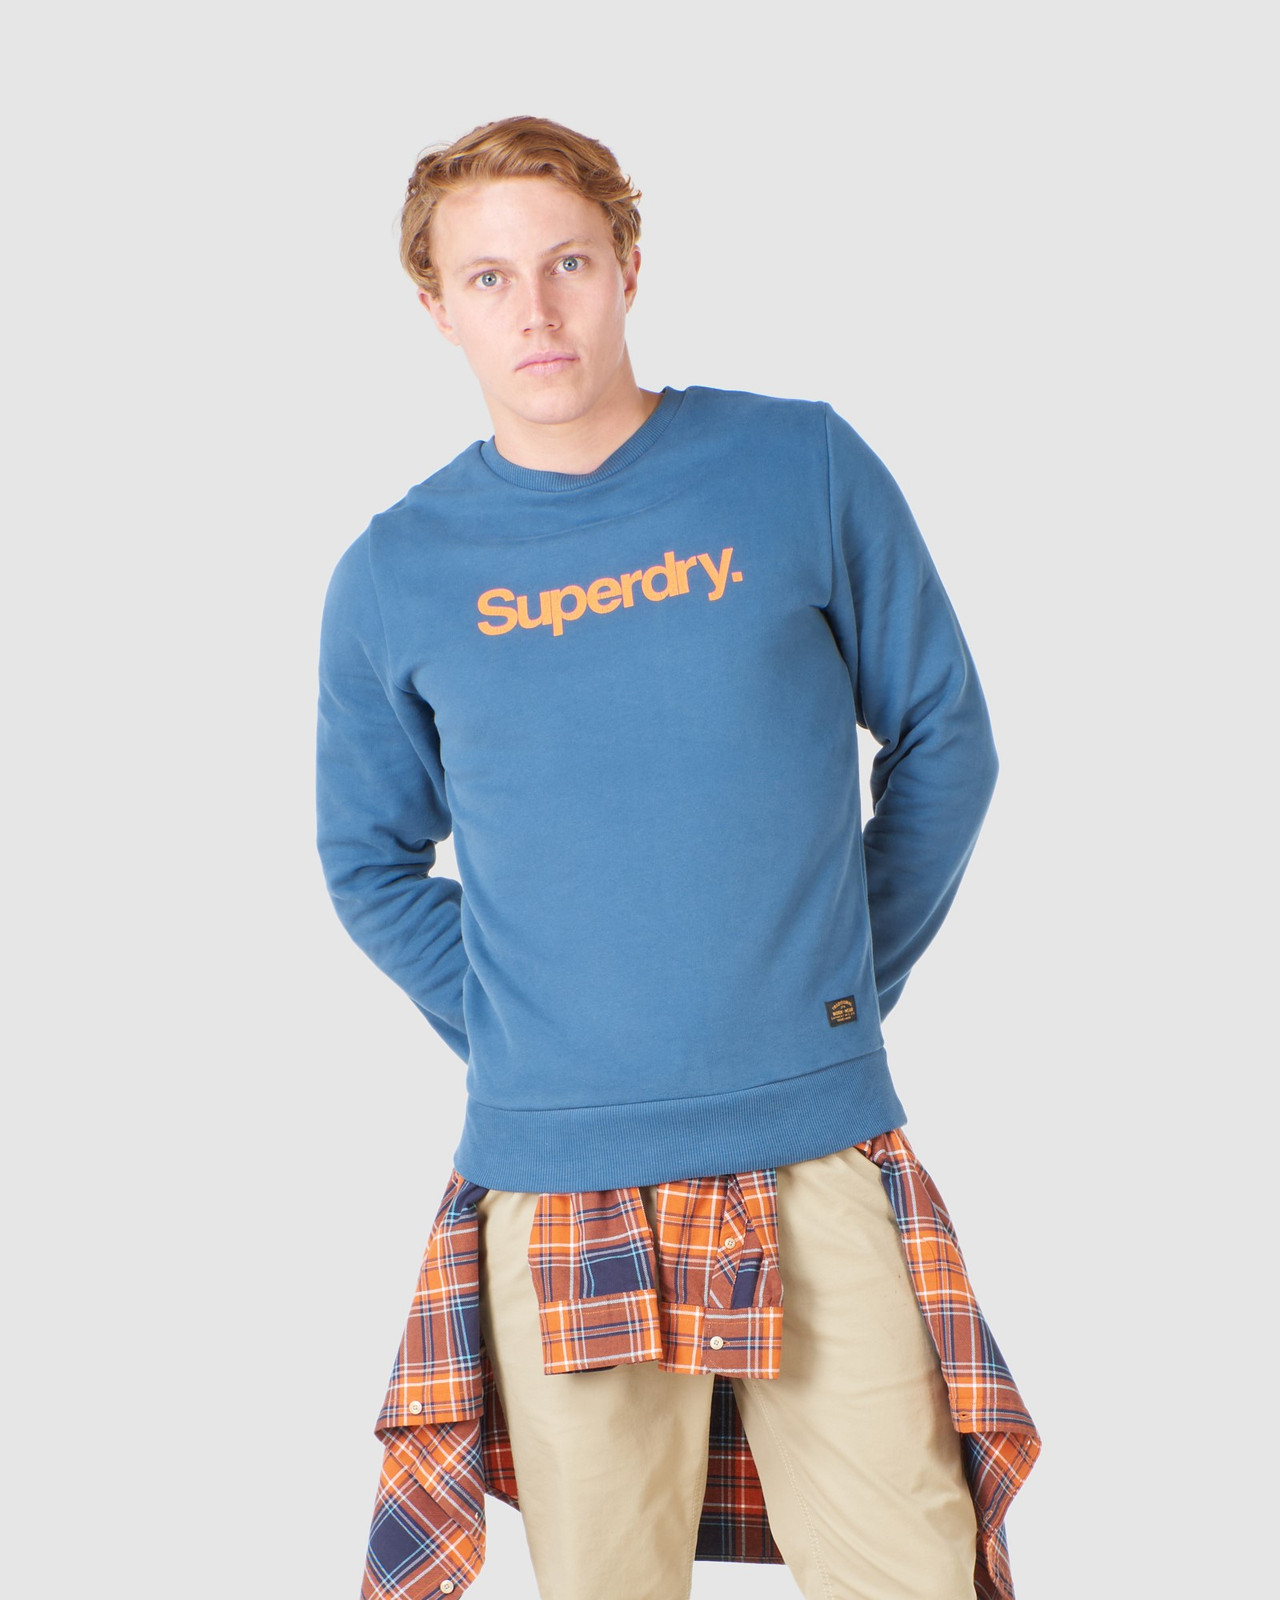 Superdry Mens CL CANVAS CREW Blue Sweat Tops 0